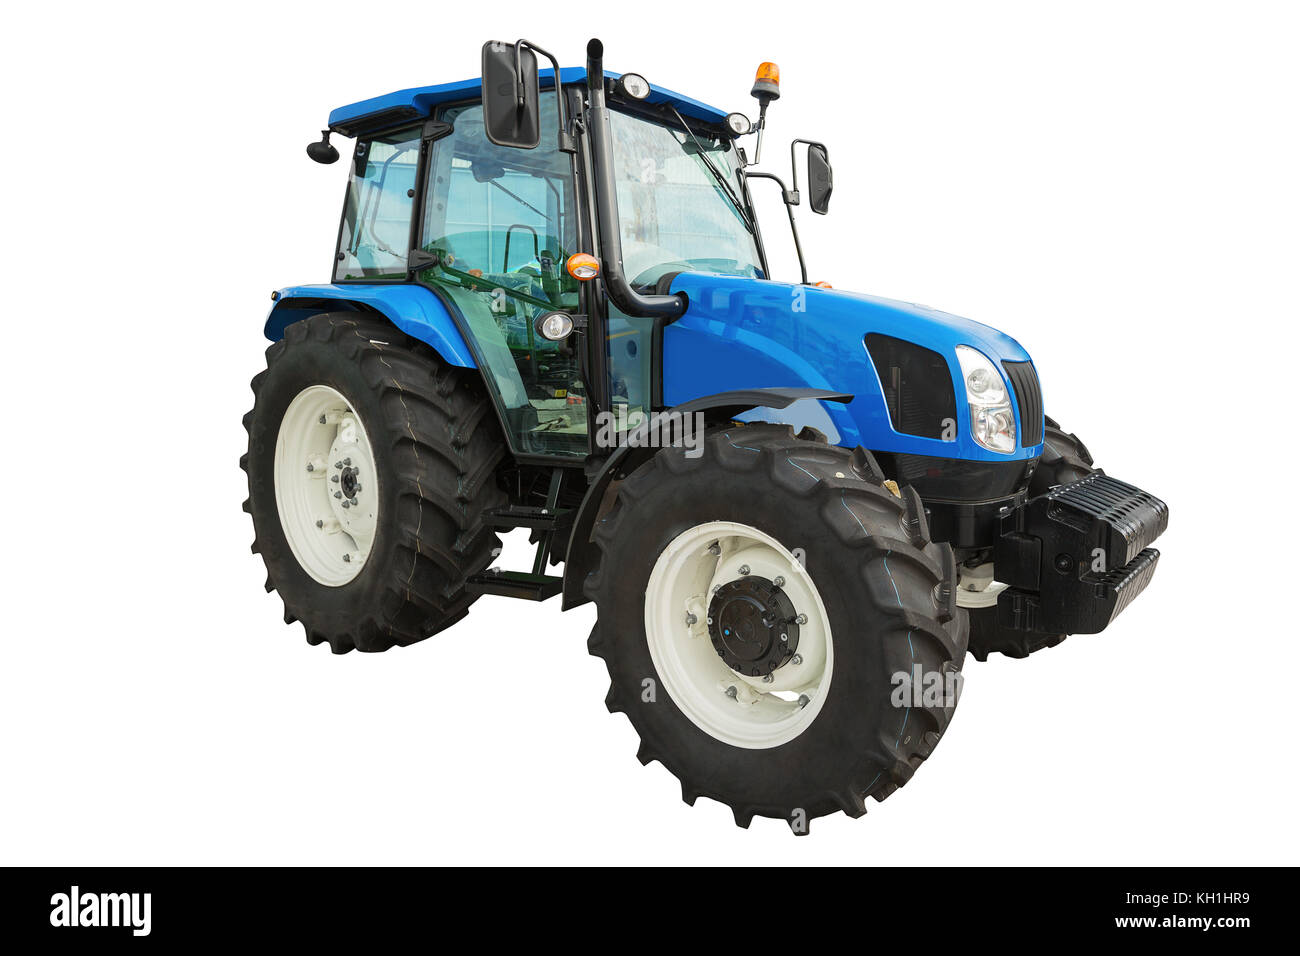 New modern agricultural tractor isolated on white background with clipping path - Stock Image